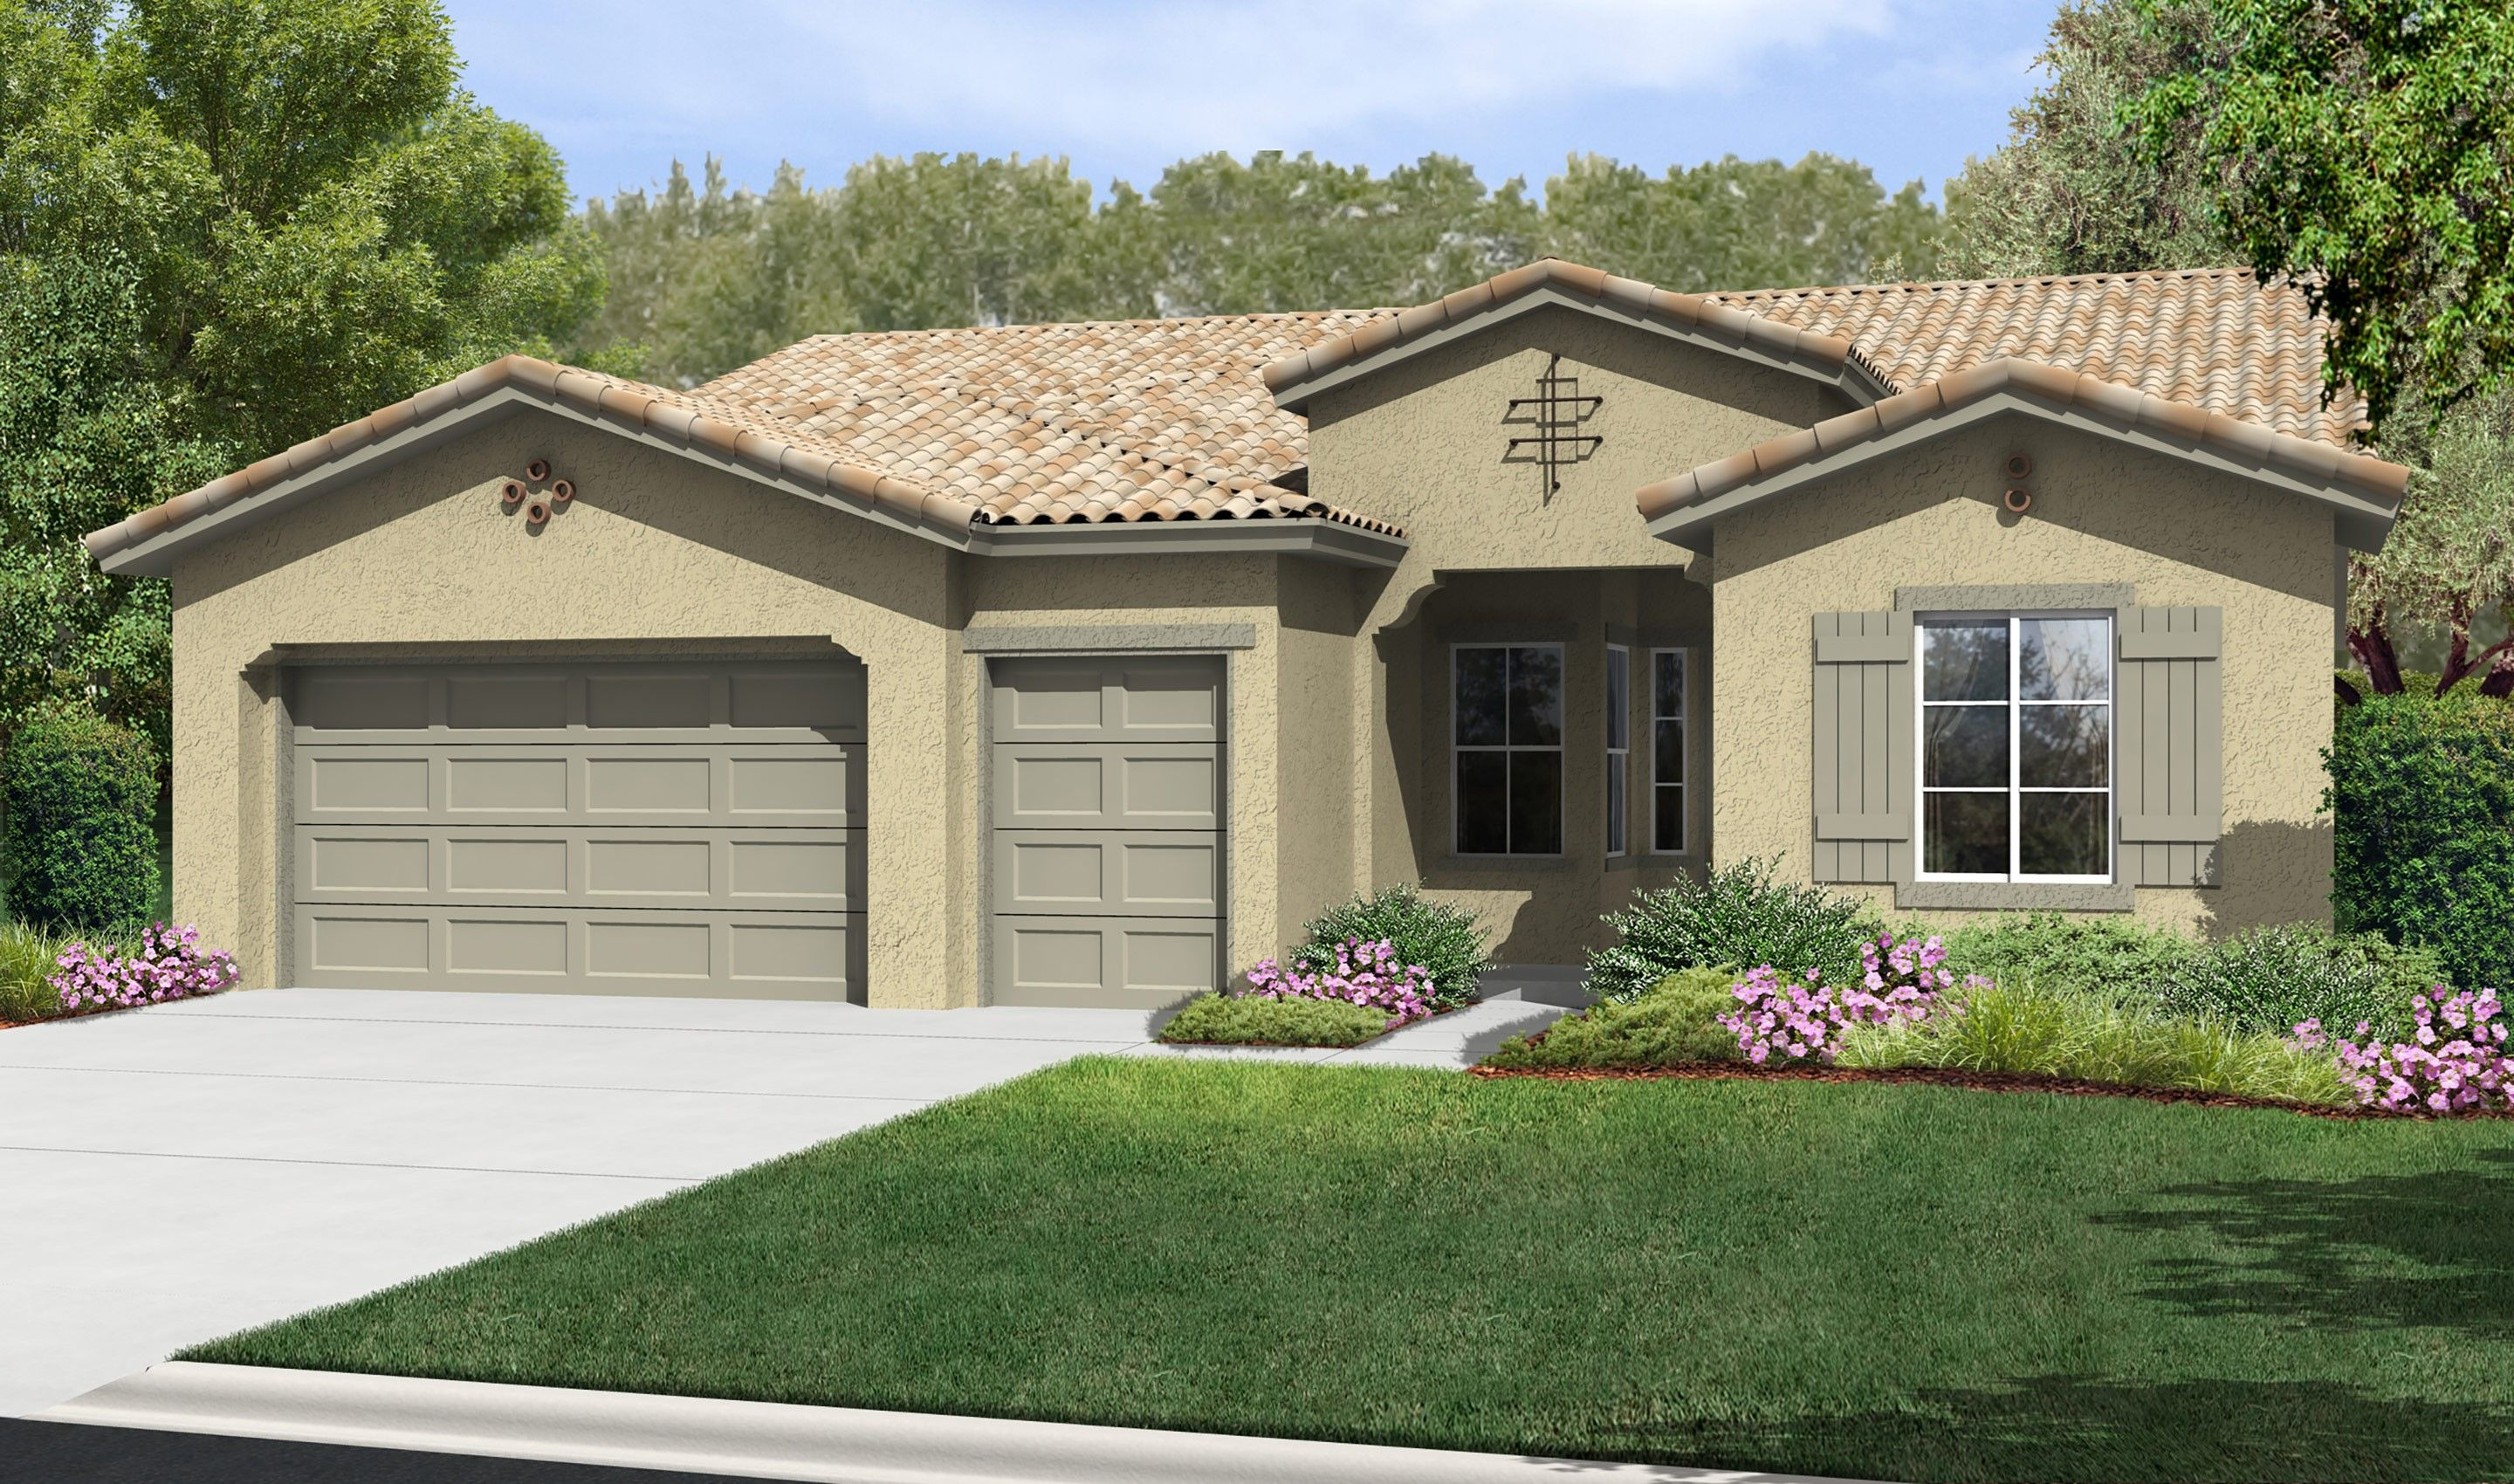 Single Family for Sale at K. Hovnanian's® Four Seasons At Beaumont - Montage 339 Enchanted Park North Beaumont, California 92223 United States